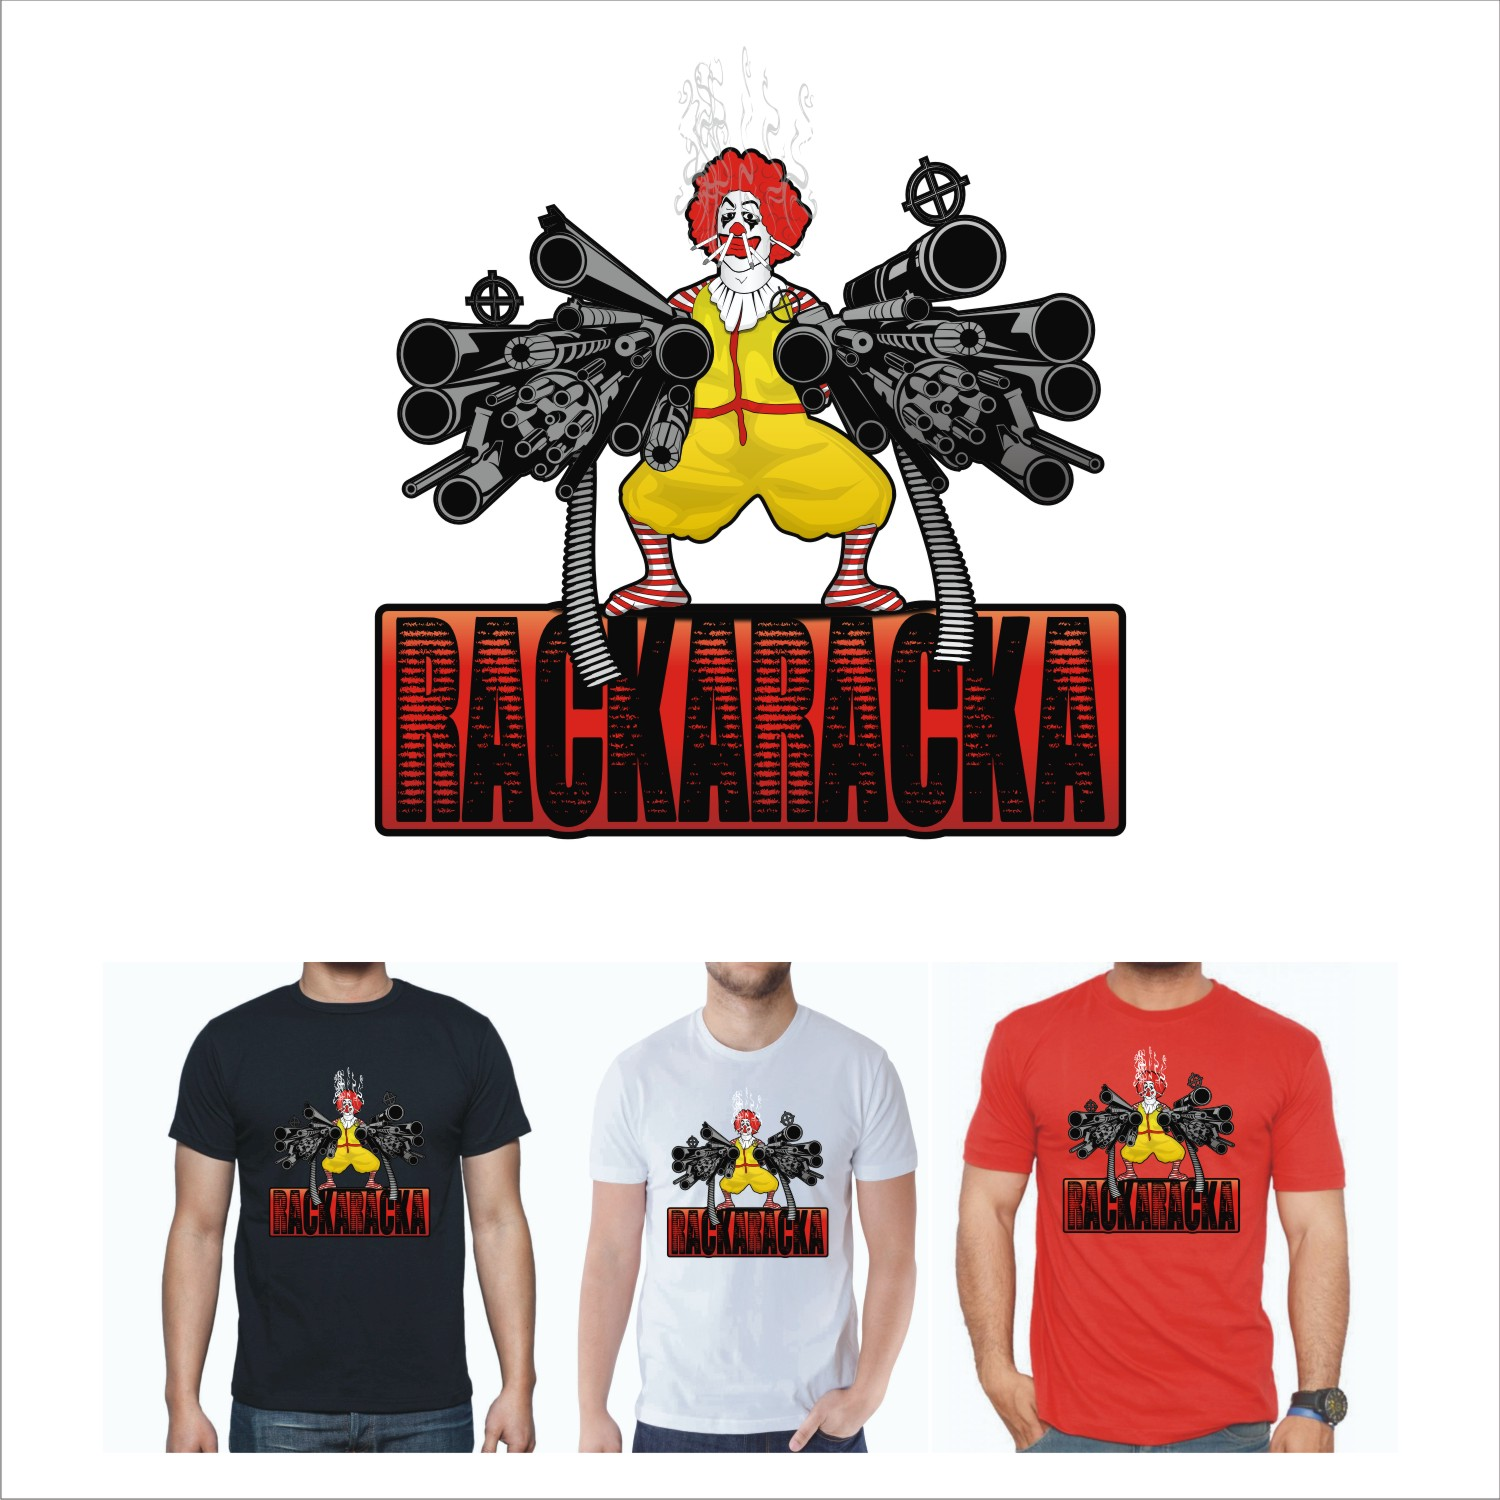 Design t shirt youtube - T Shirt Design By Lockjawcreative For Rackaracka Large Youtube Channel Needs T Shirt